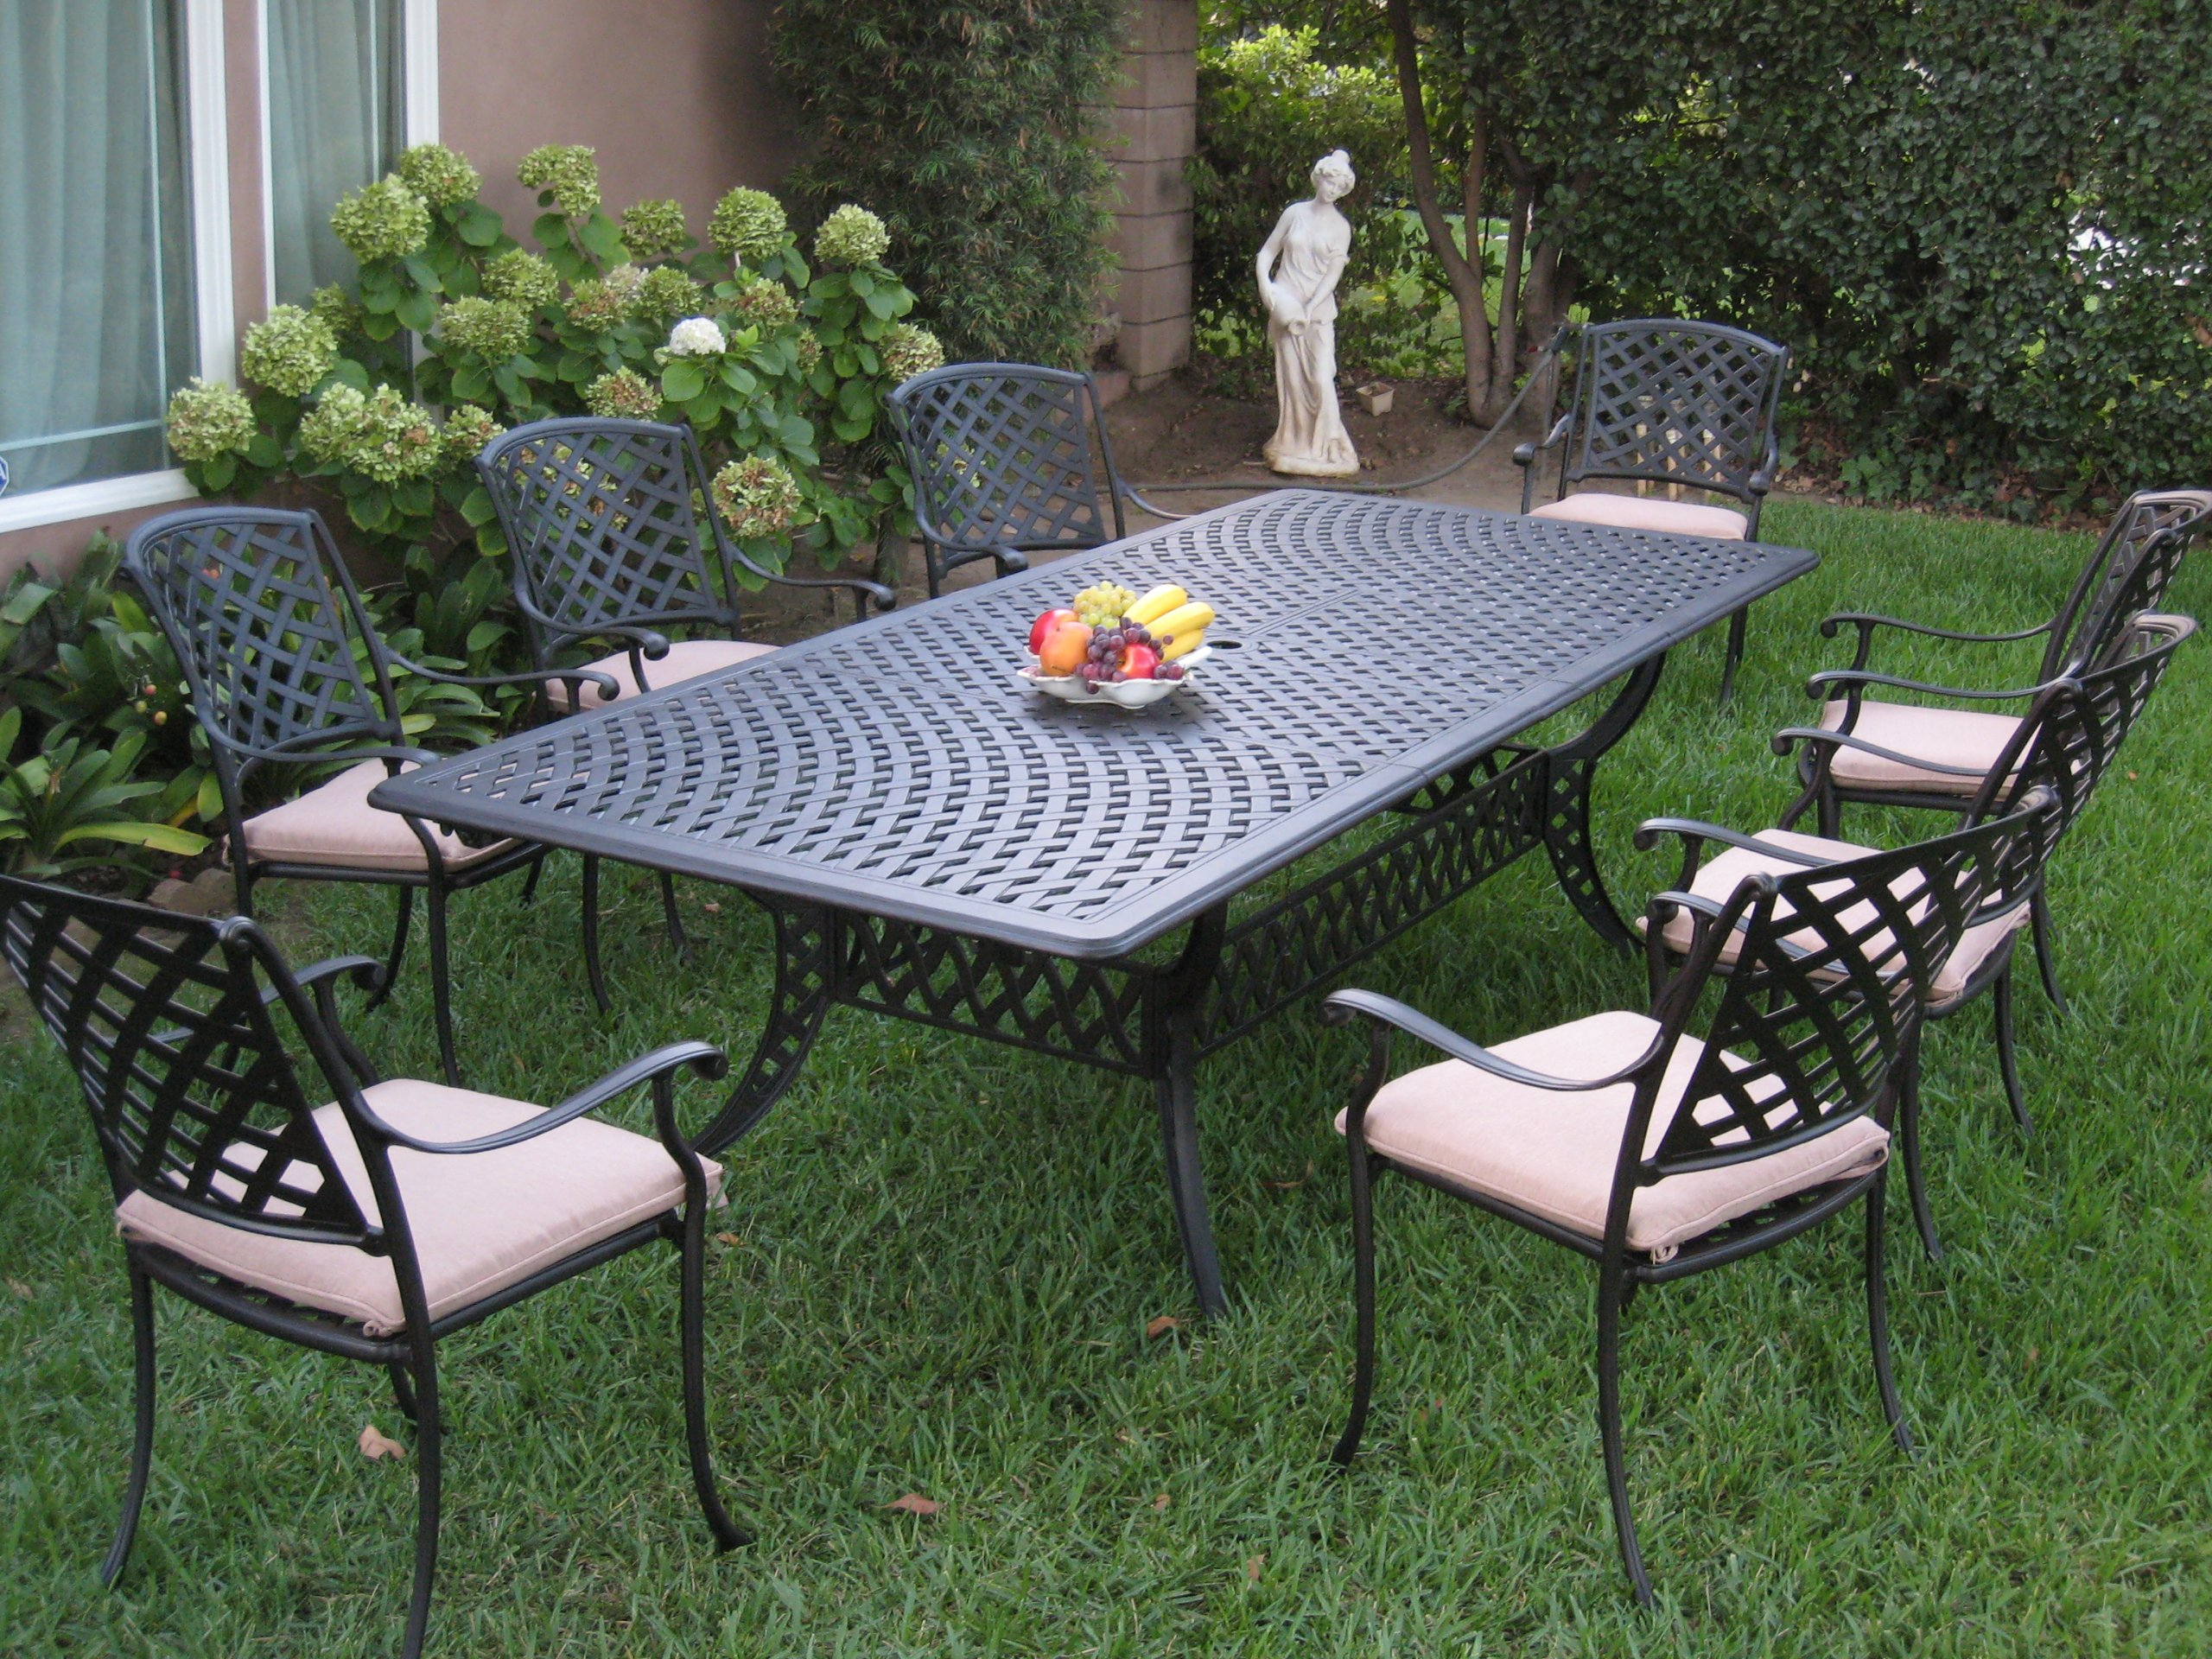 CBM Patio Kawaii Collection Cast Aluminum Outdoor Patio Furniture 9 Piece Extension Dining Table Set KL09KLSS260112T - CBM patio Kawaii Collection Cast Aluminum Outdoor Patio Furniture 9 Piece Extension Dining Table Set KL09KLSS260112T Kawaii Collections Made of genuine cast aluminum,Comfortable seating Durable and quality. Assembly required for Table legs only. Color: Desert Brown Slate Finish. Includes: 8 Armchairs and with free Cushions 1 table. - patio-furniture, dining-sets-patio-funiture, patio - A1%2BbqVdj9PL -